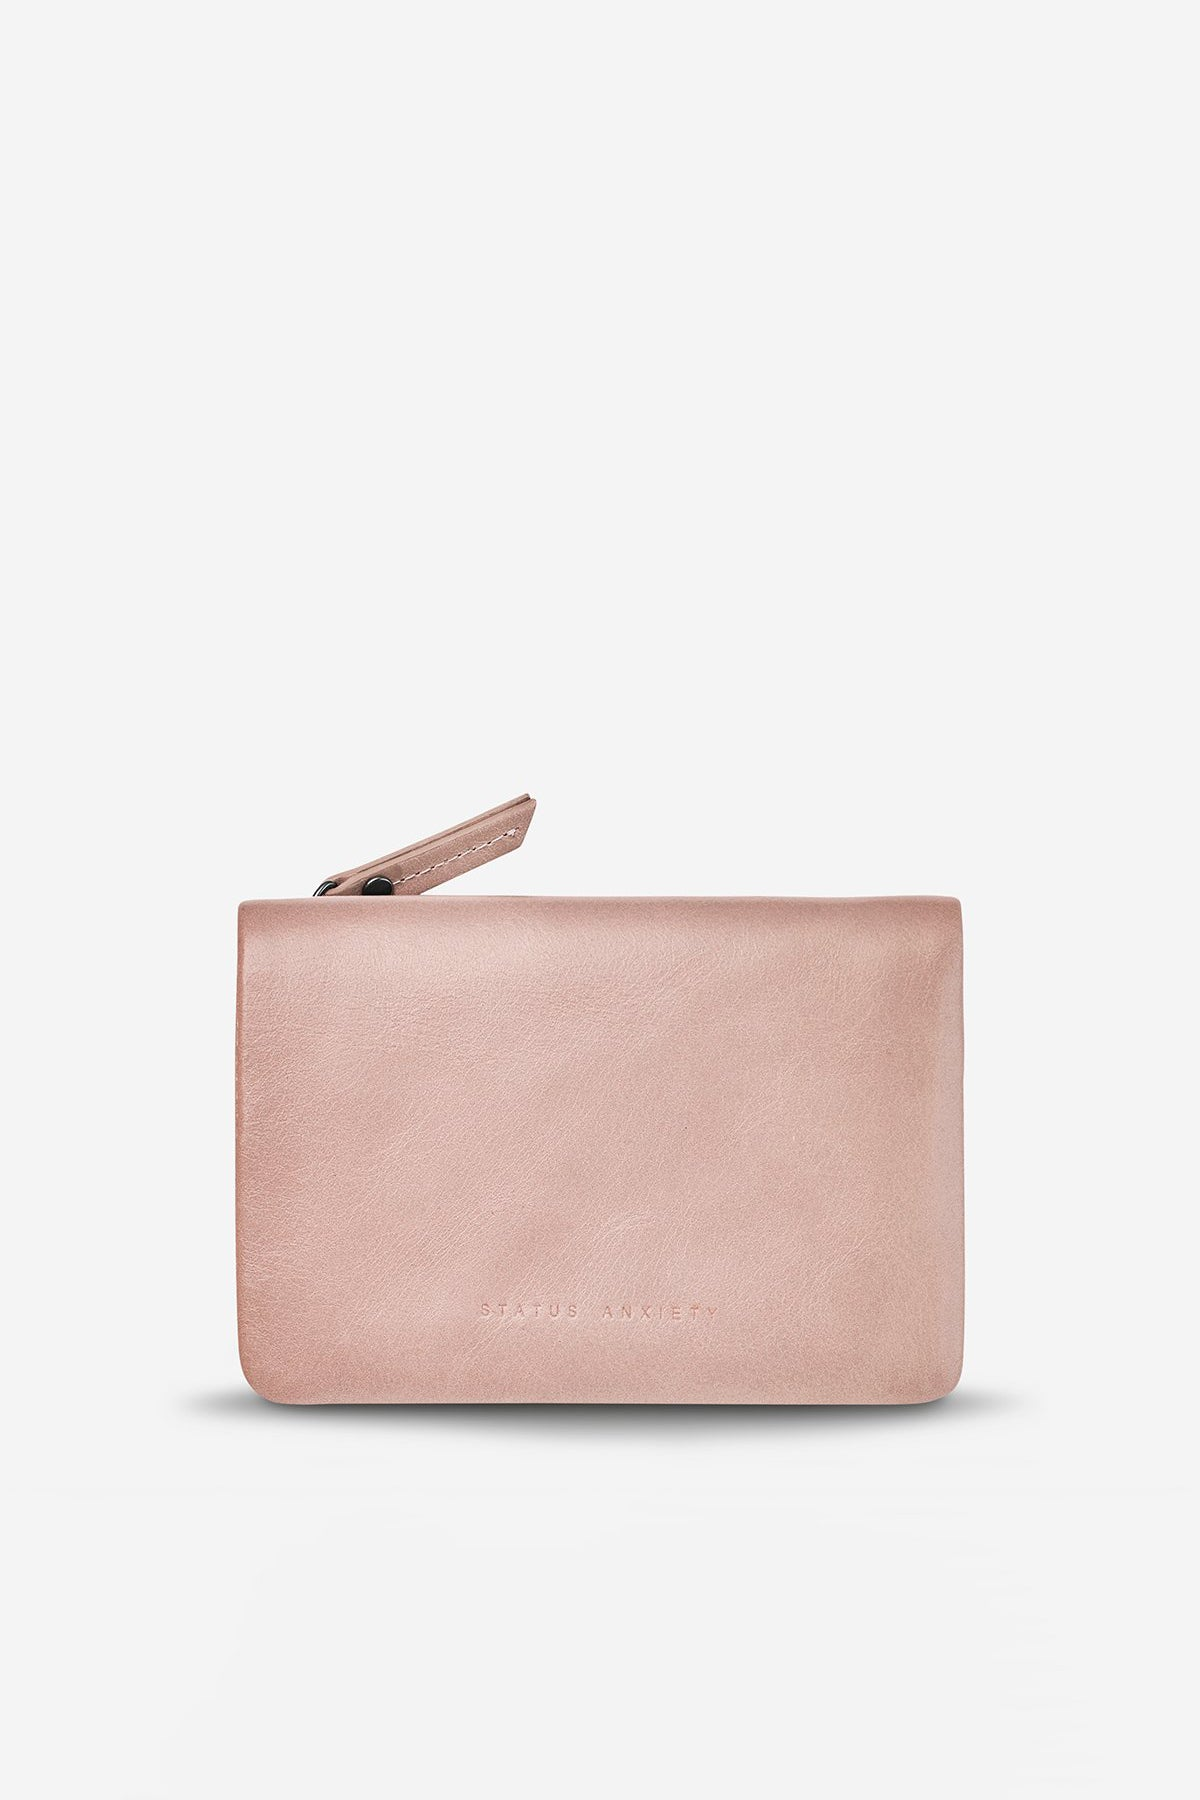 Is Now Better Wallet - Dusky Pink